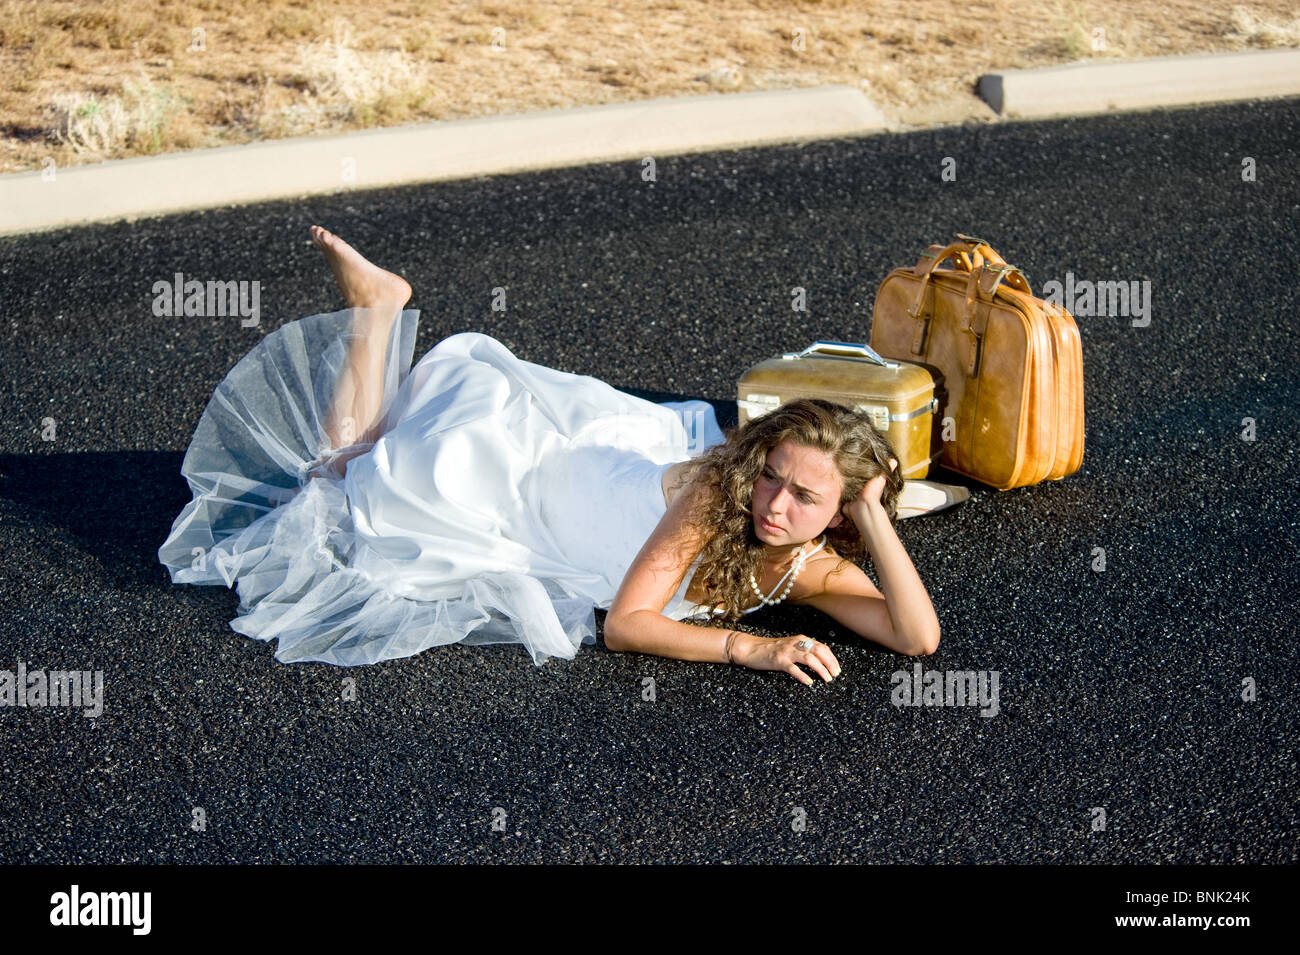 A bride is kicked to the curb and all alone along an isolated street. - Stock Image